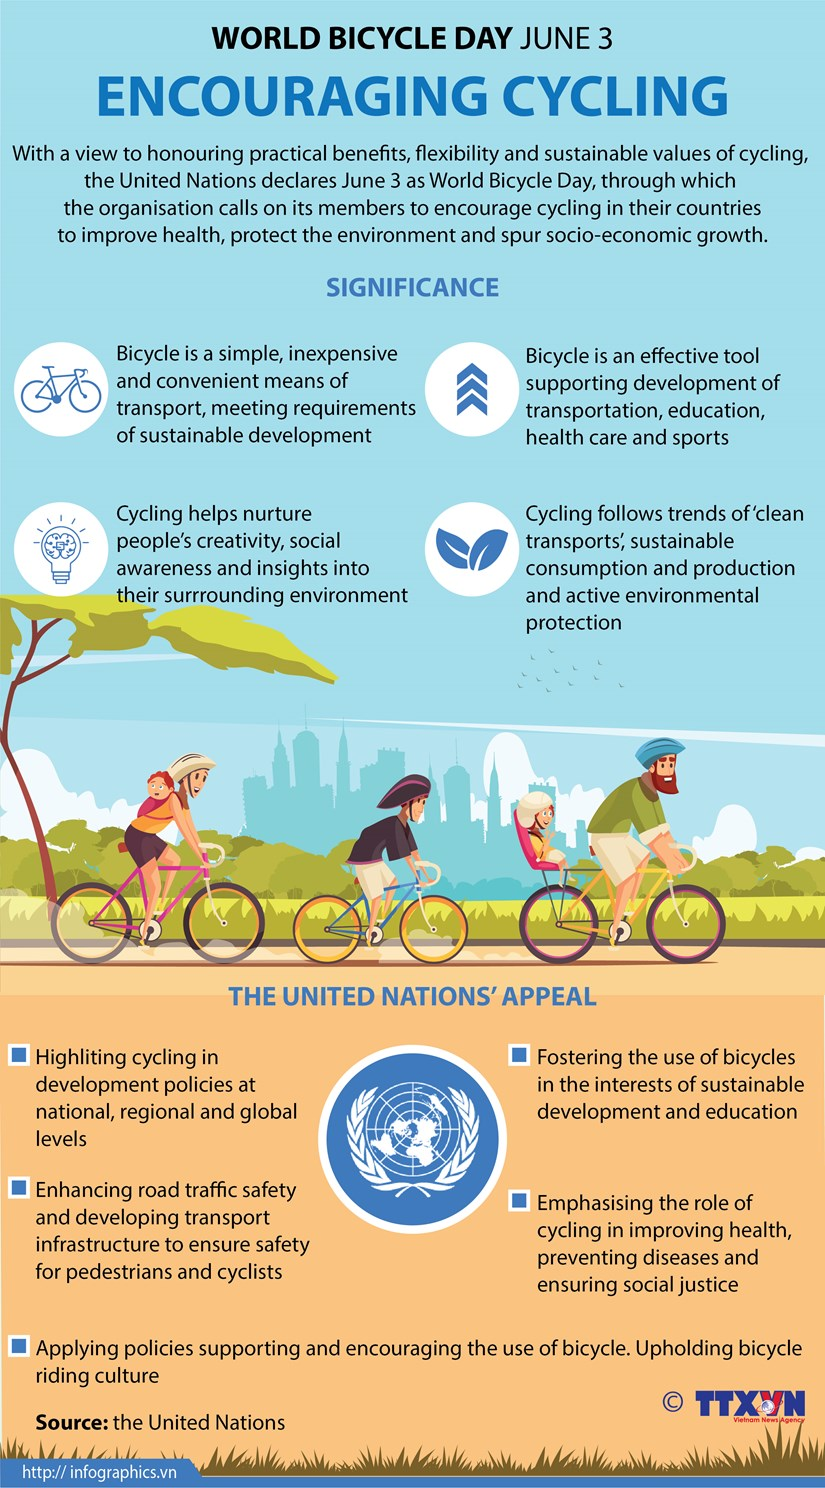 World Bicycle Day encourages cycling hinh anh 1